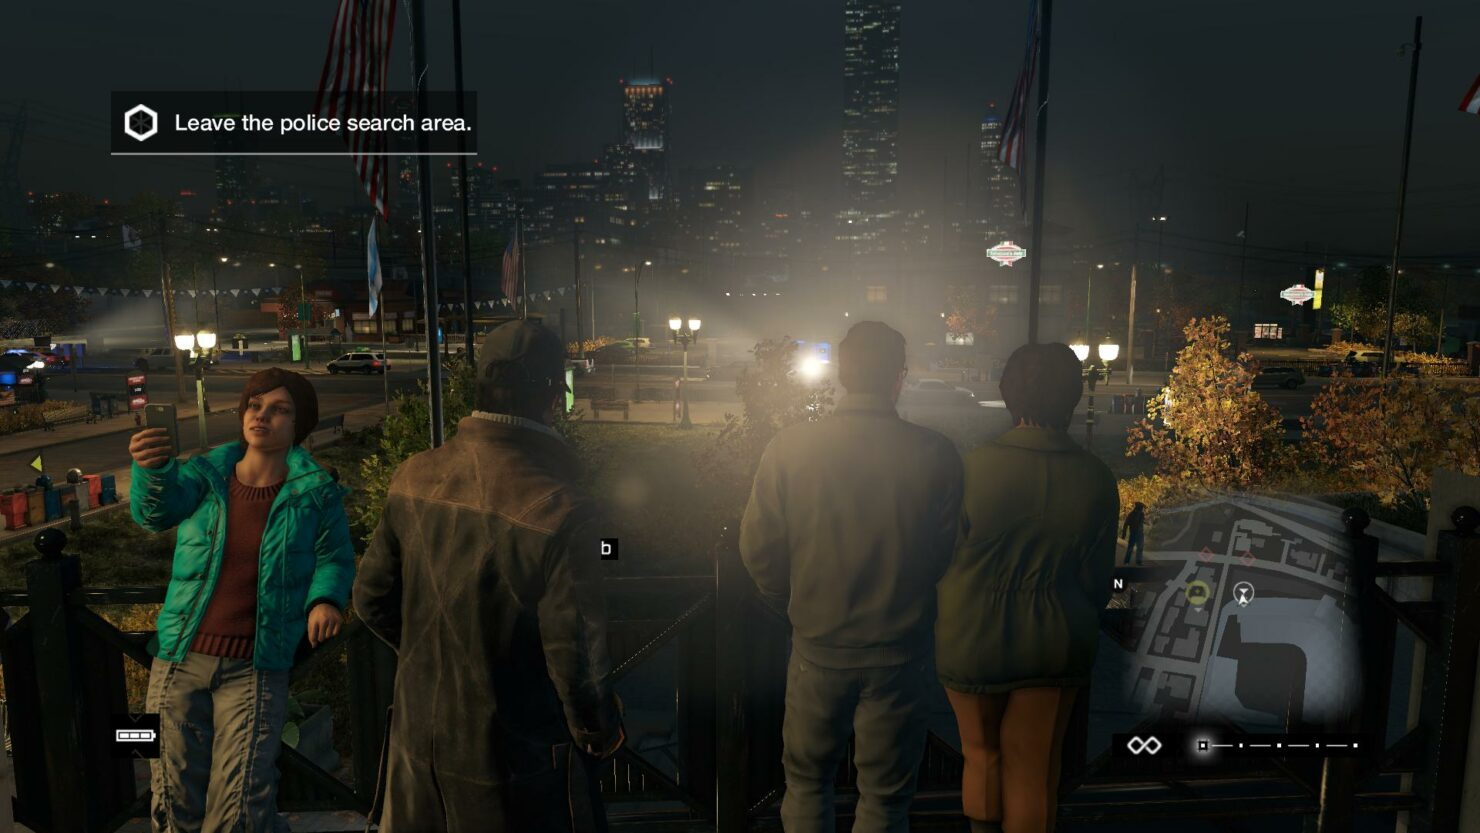 watch_dogs-2014-05-24-11-30-21-58